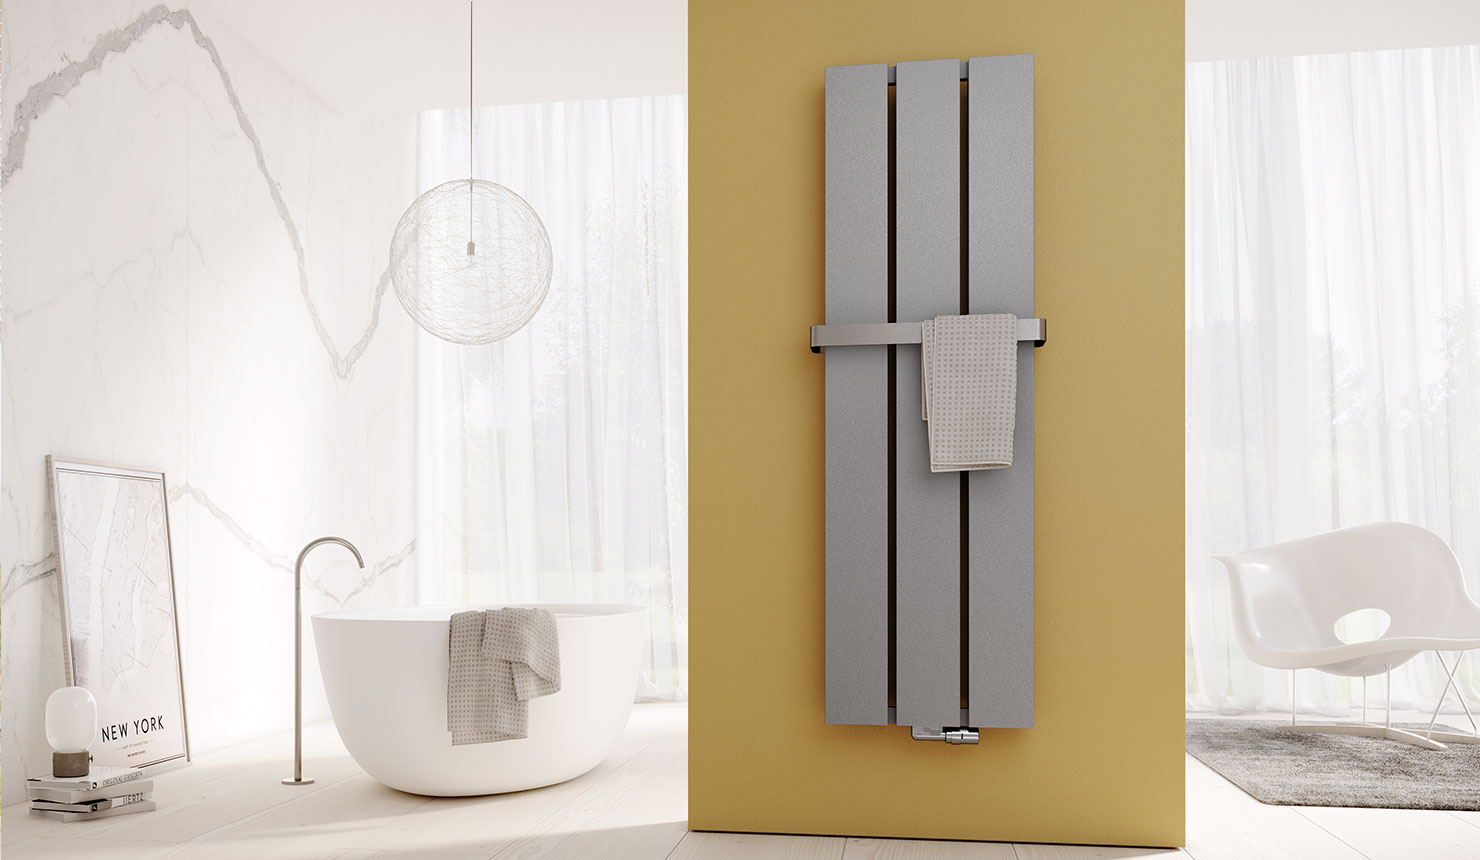 Kermi design radiator Decor-Arte Plan in a clear shape and with consistent lines